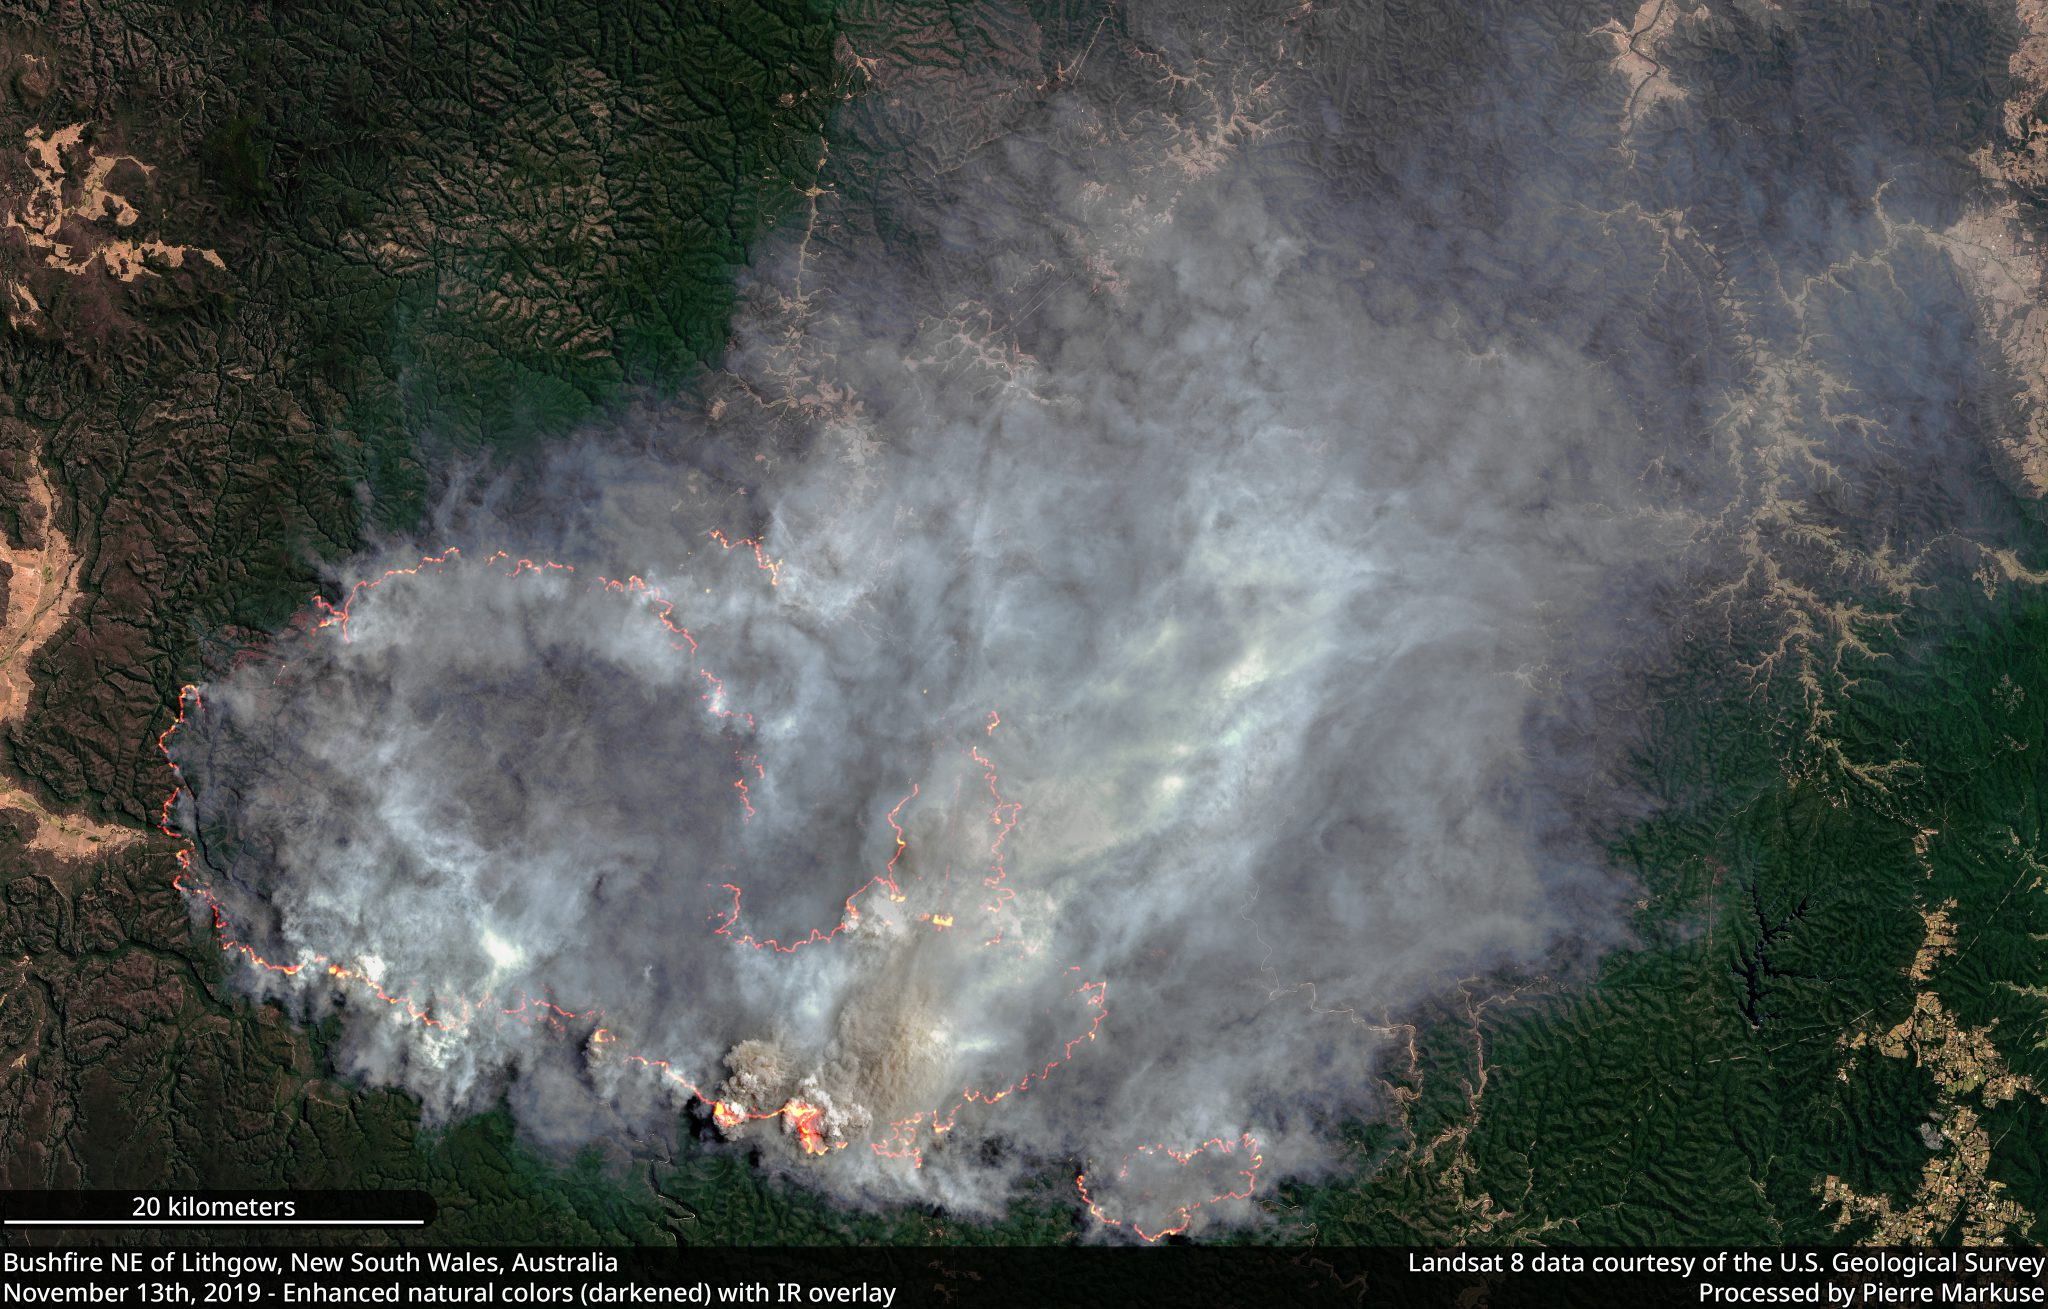 desc:Bushfire NW of Lithgow, New South Wales, Australia - November 13th, 2019 Copernicus/Pierre Markuse